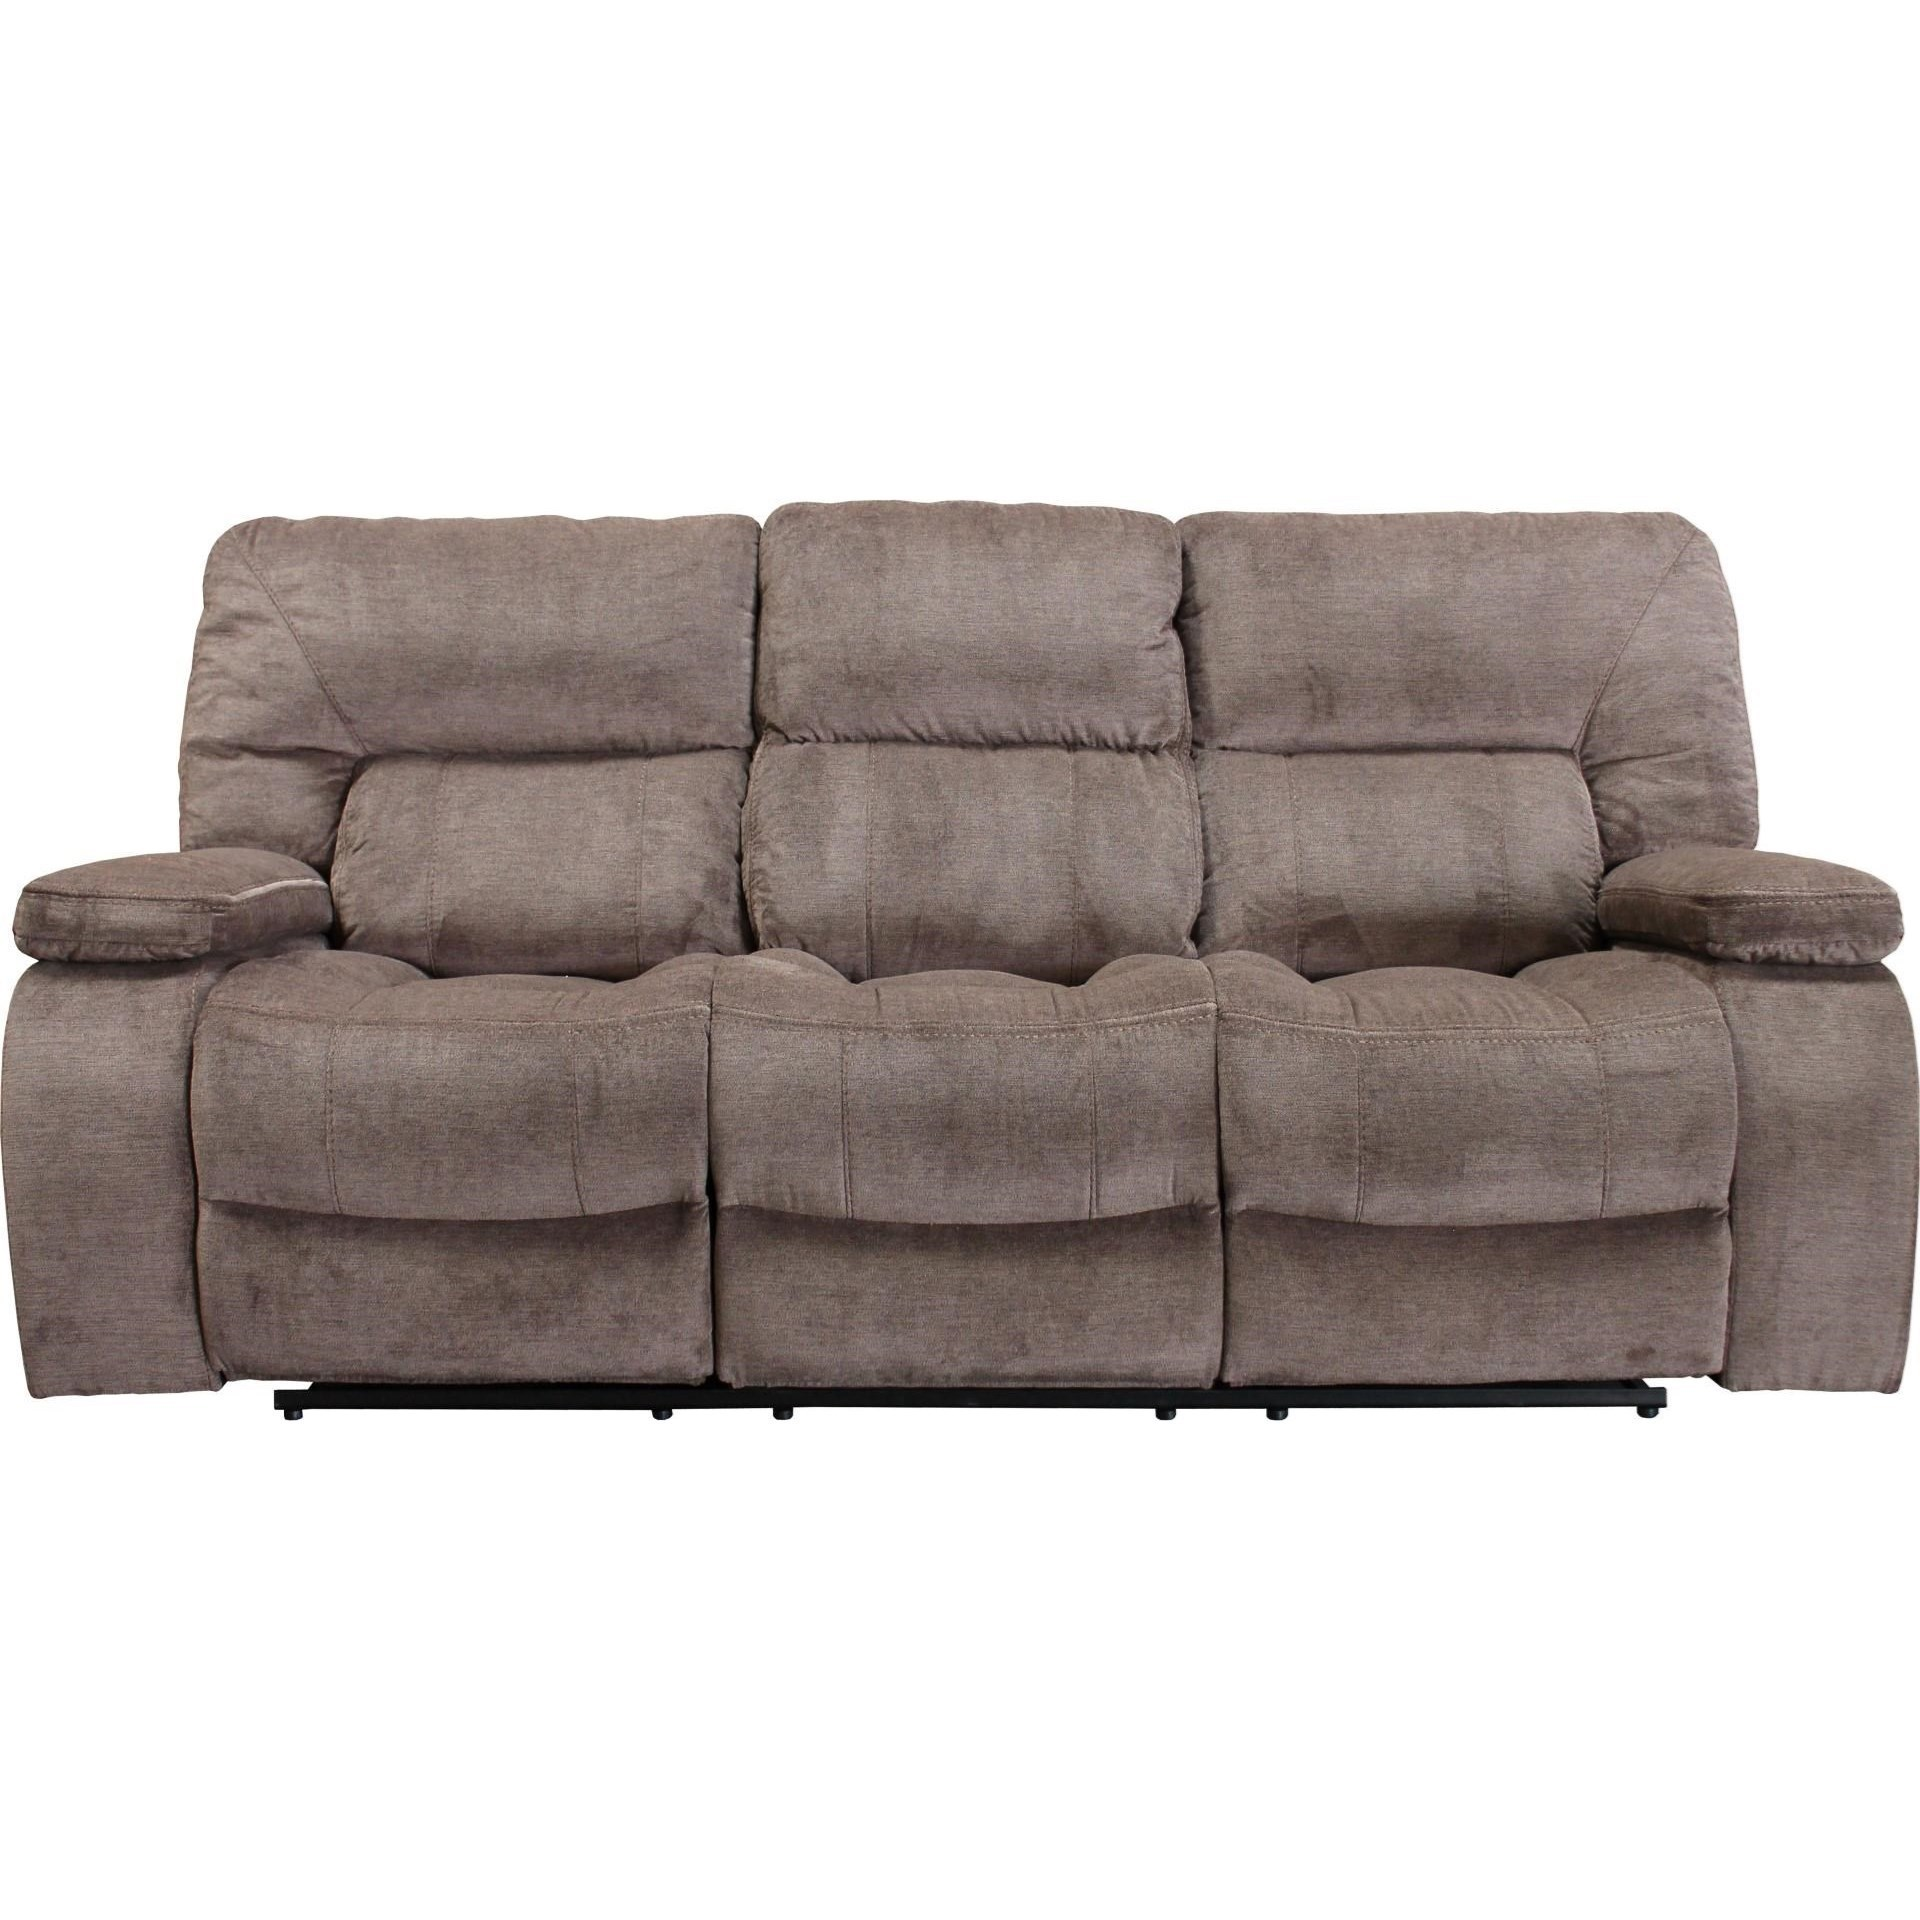 theo casual triple reclining sofa with pillow arms rotmans rh rotmans com triple recliner sofa leather triple reclining sofa